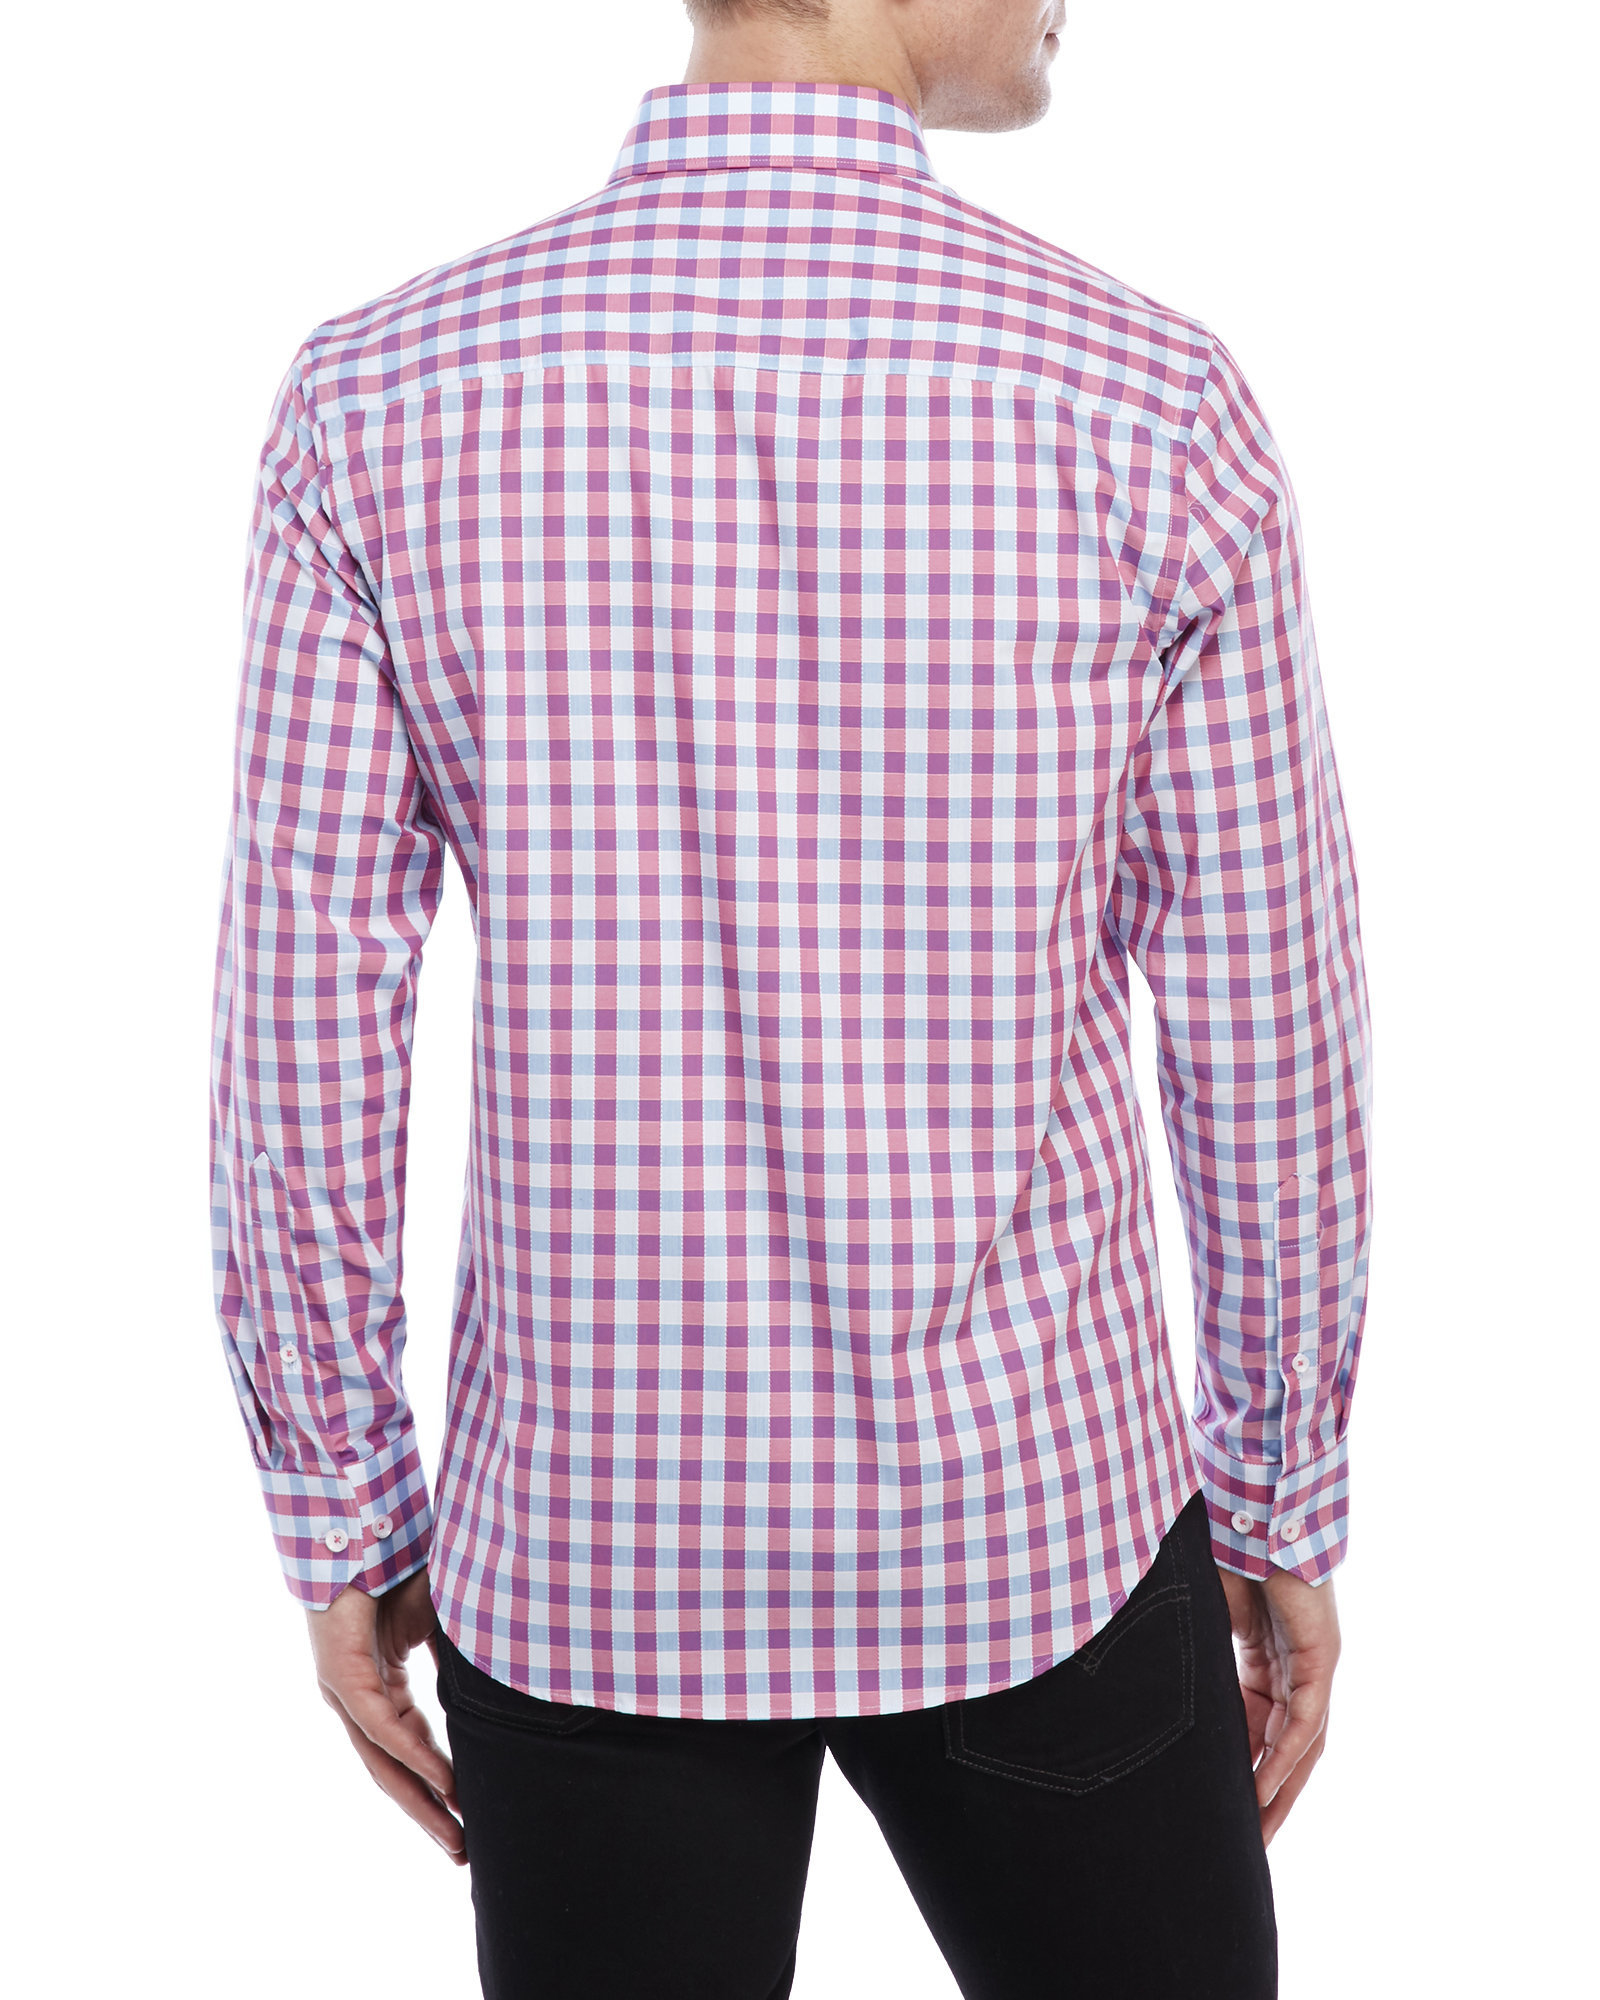 Park west checkered sport shirt in pink for men lyst for Pink checkered dress shirt